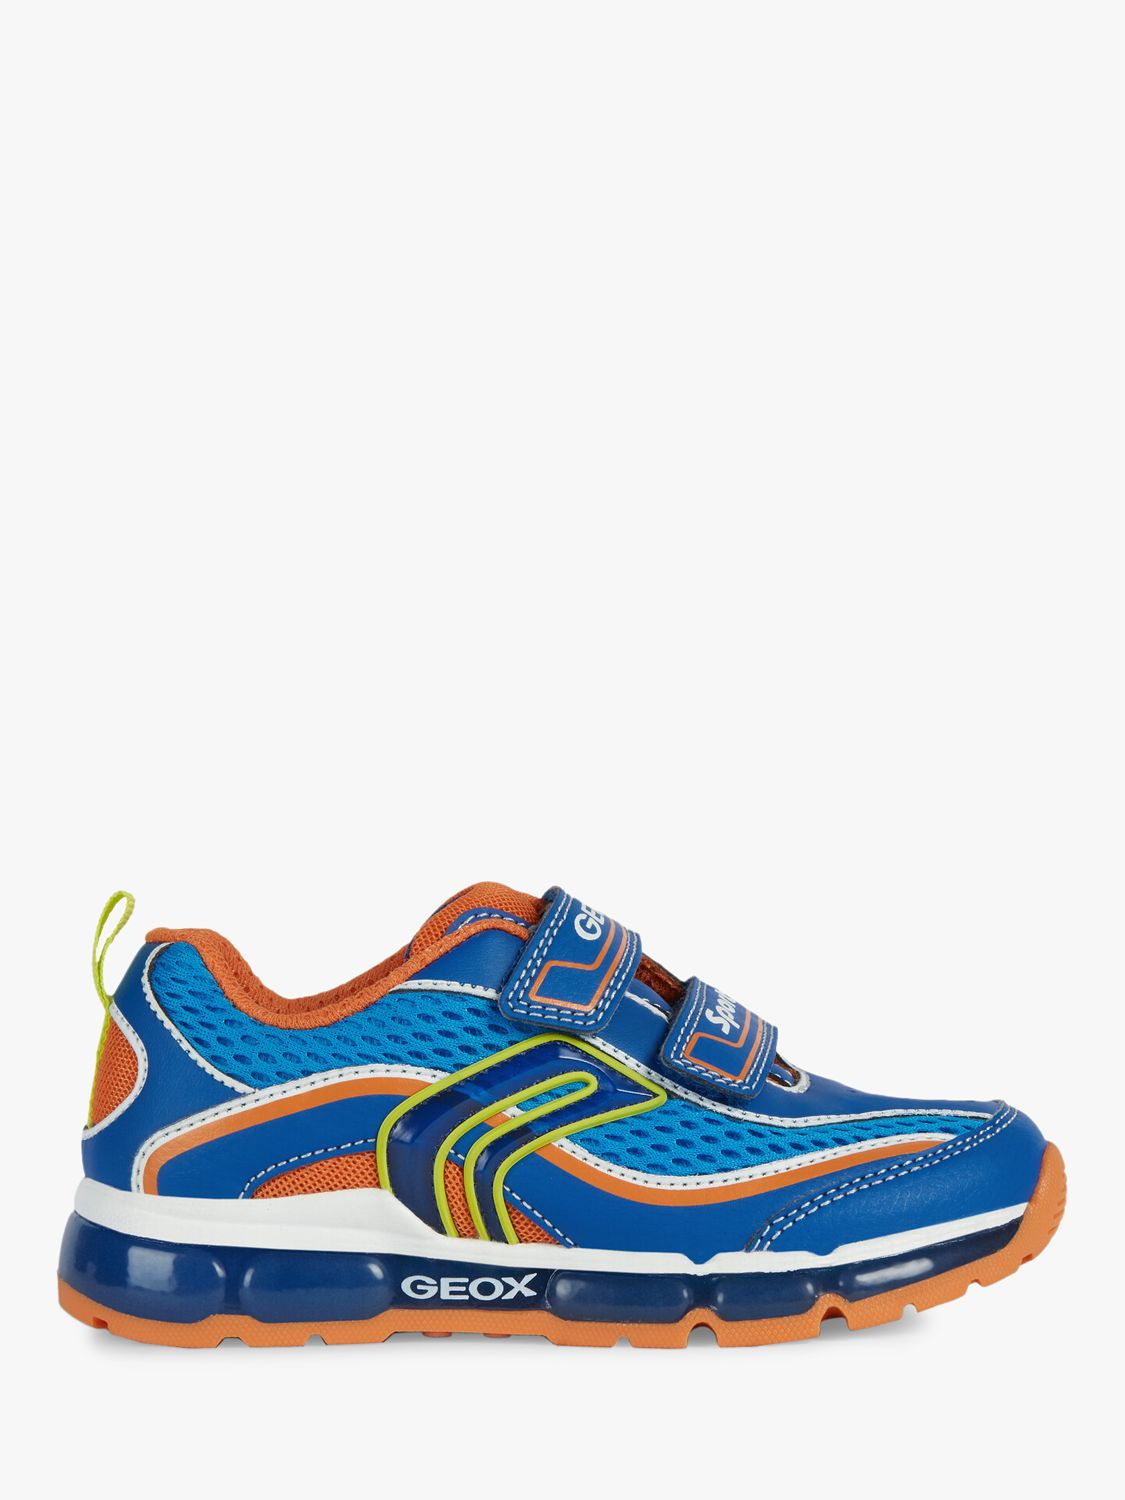 Geox Geox Children's Light Up Android Trainers, Royal/Orange